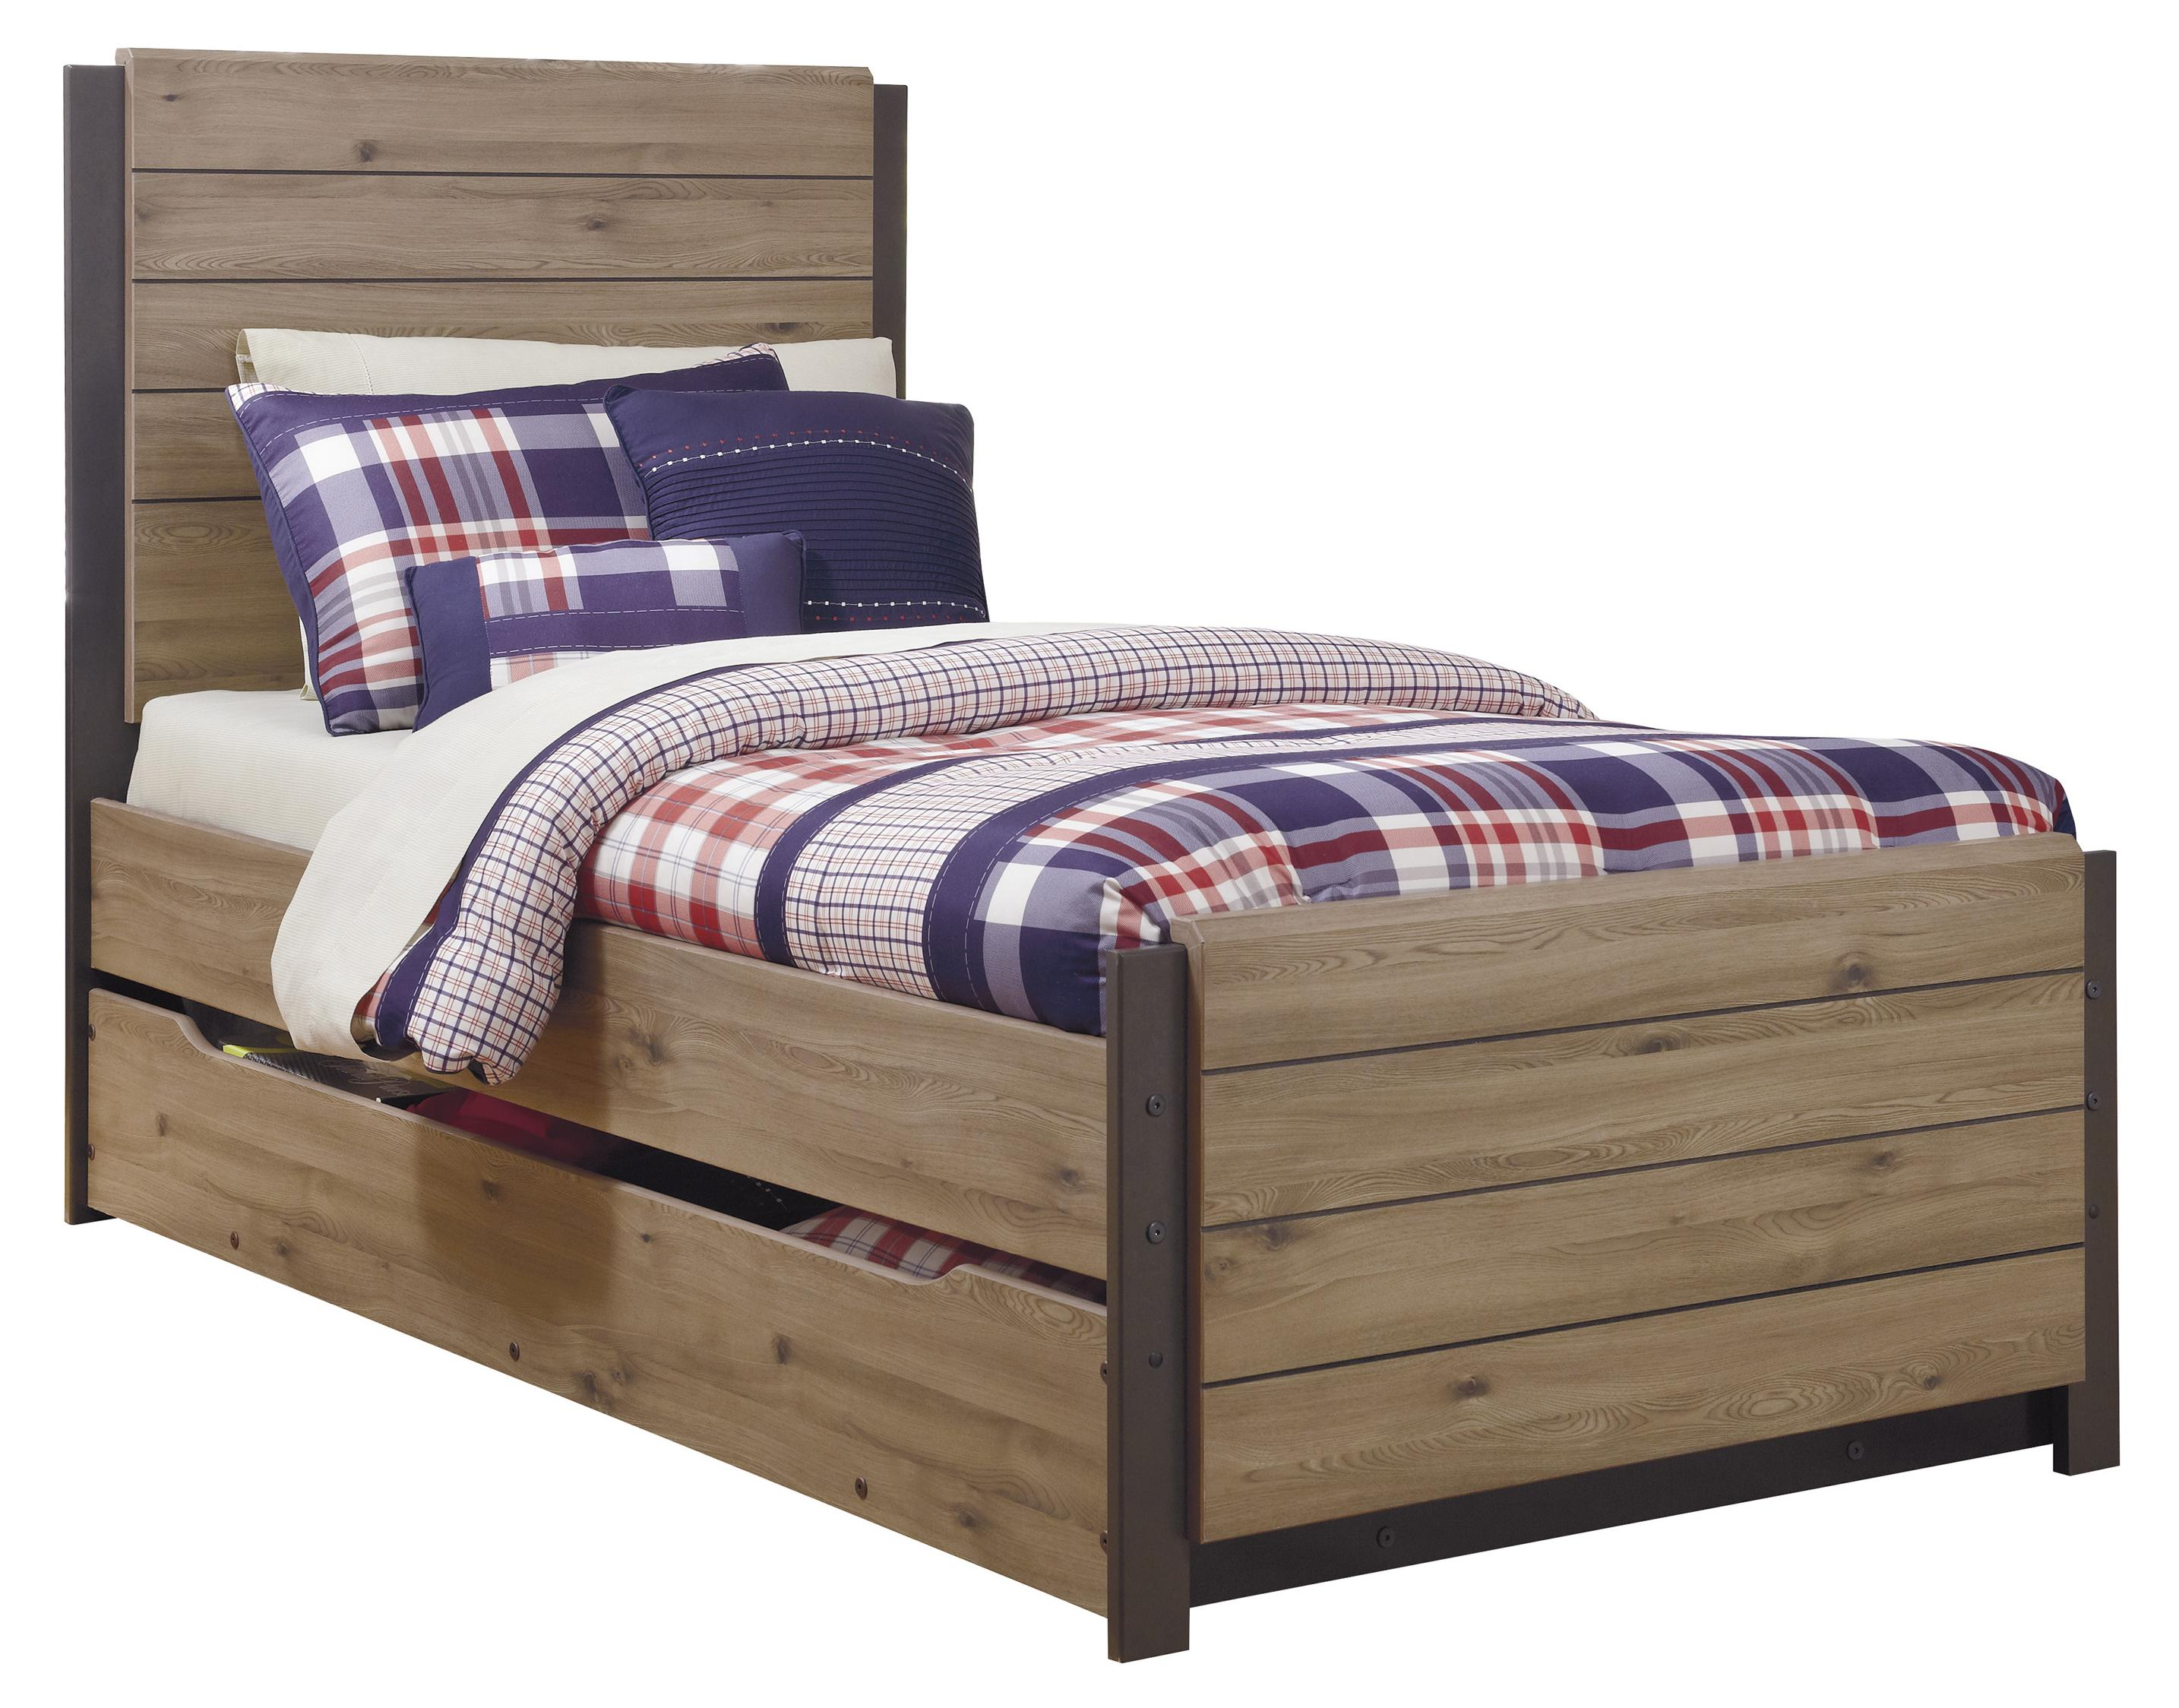 Signature Design by Ashley Dexifield Twin Panel Bed w/ Trundle Under Bed Storage - Item Number: B298-53+52+83+60+B100-11